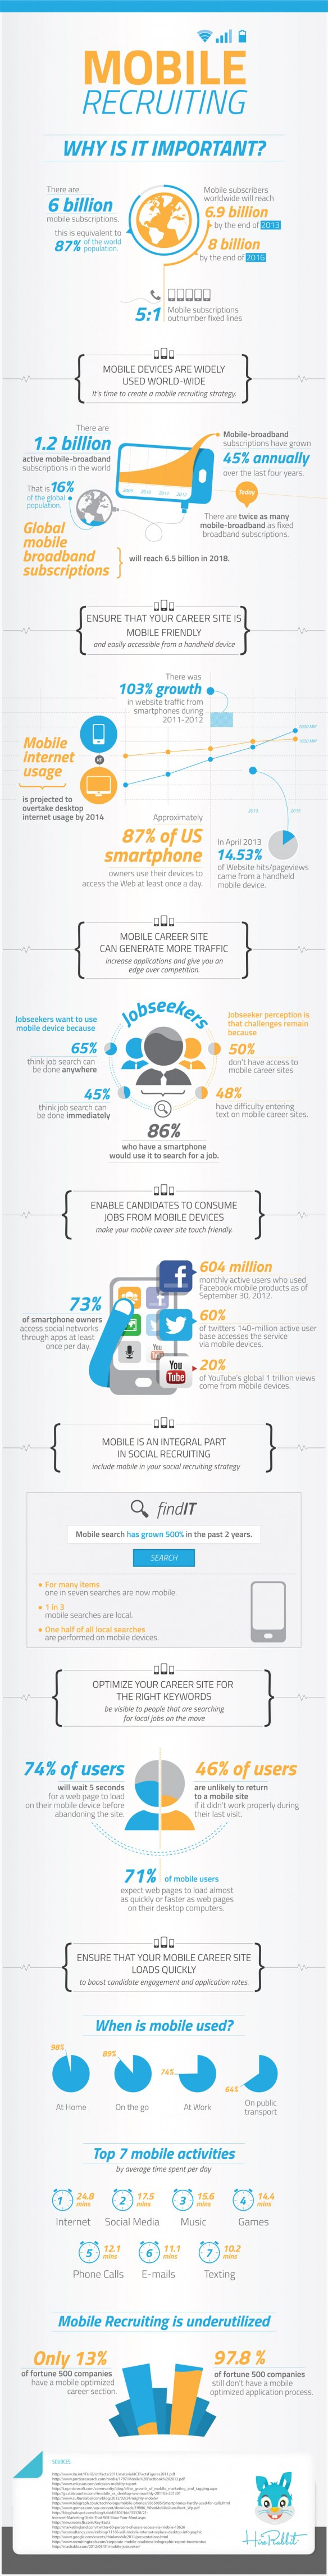 Mobile Recruiting Infografik - Quelle -hireRabbit